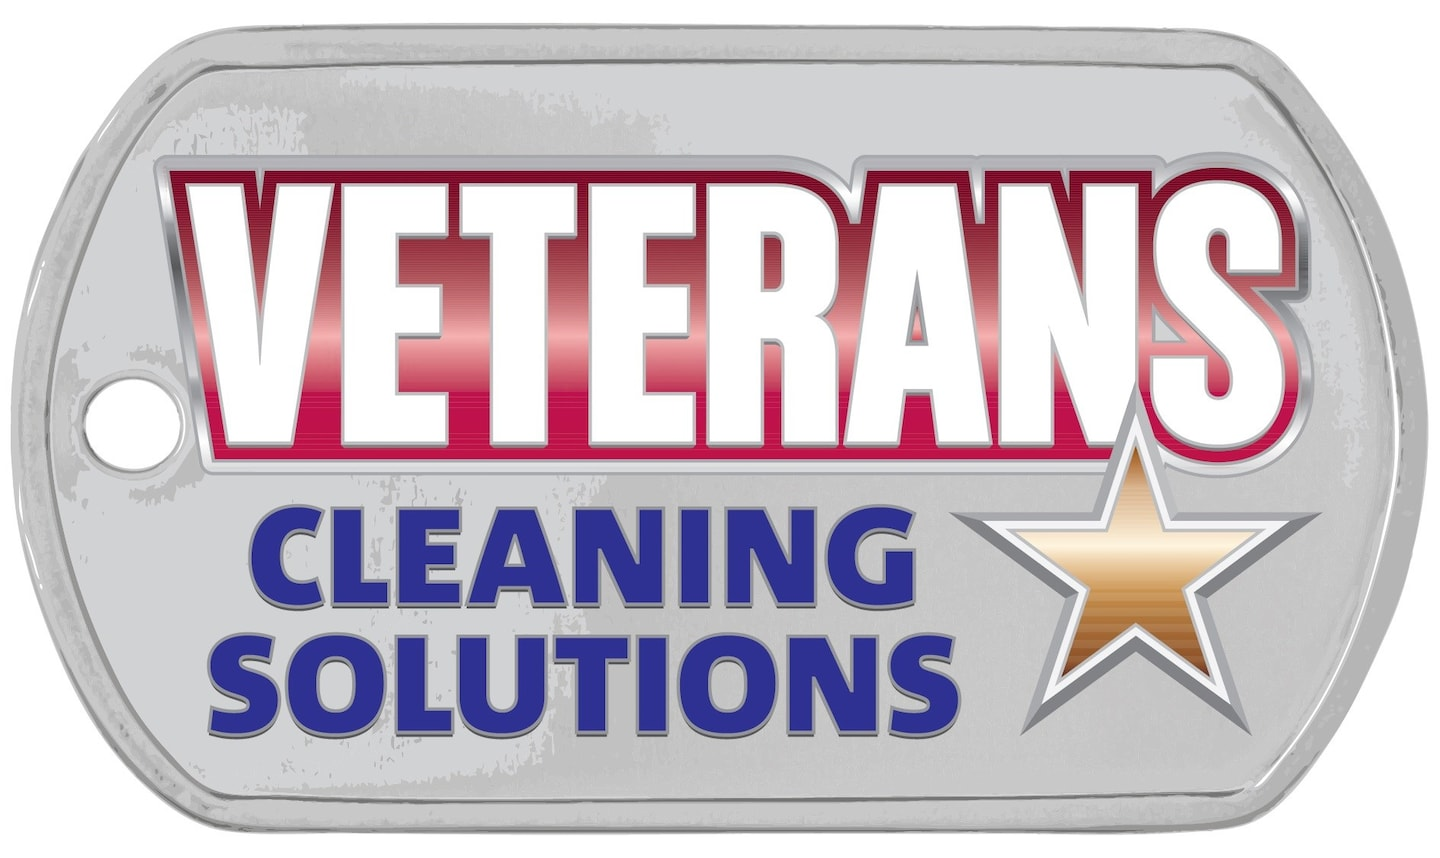 Veterans Cleaning Solutions, LLC